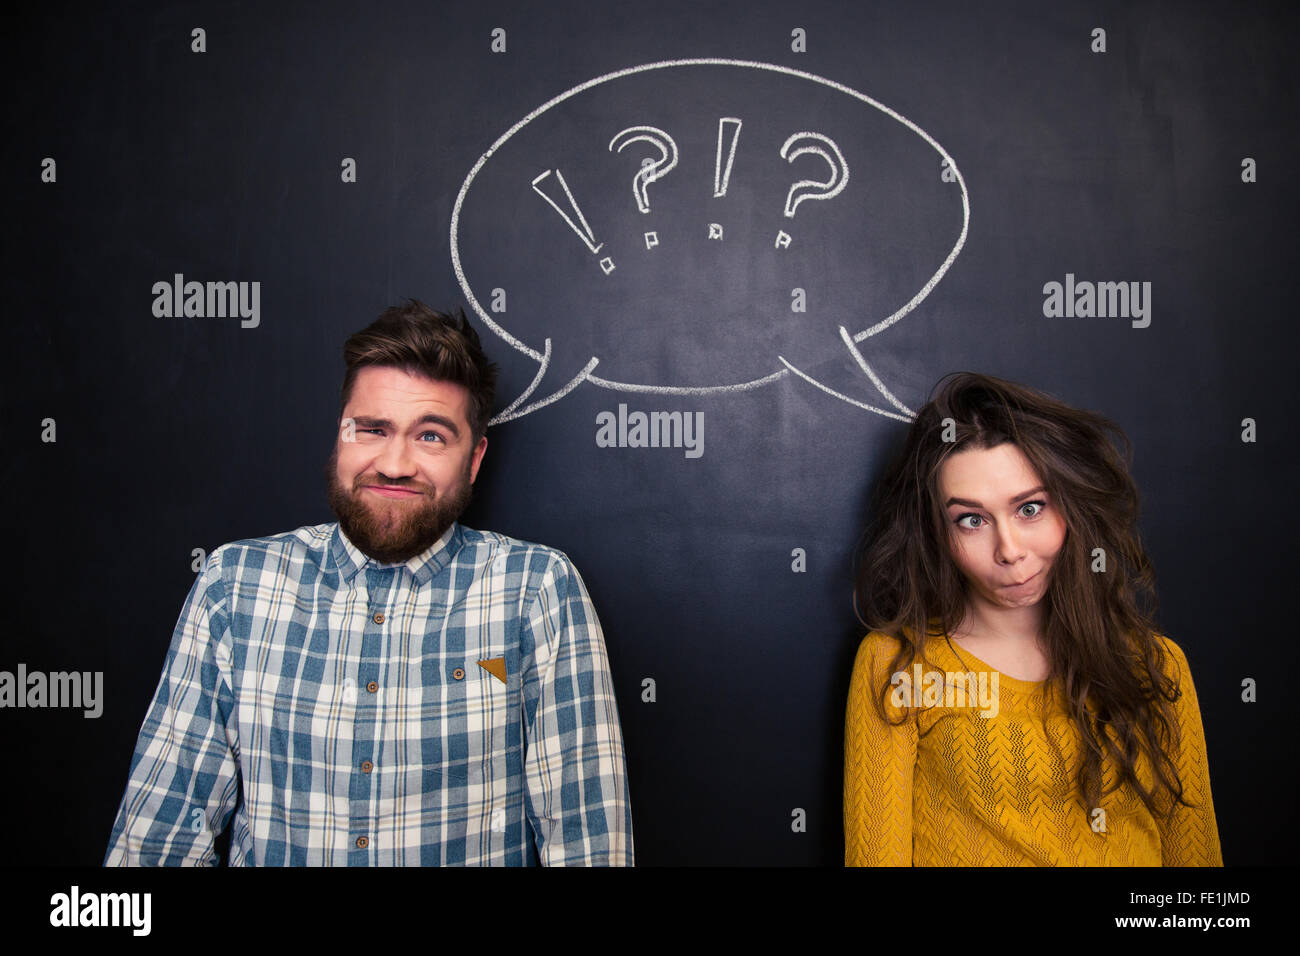 Ugly young couple joking and grimacing over chalkboard background - Stock Image